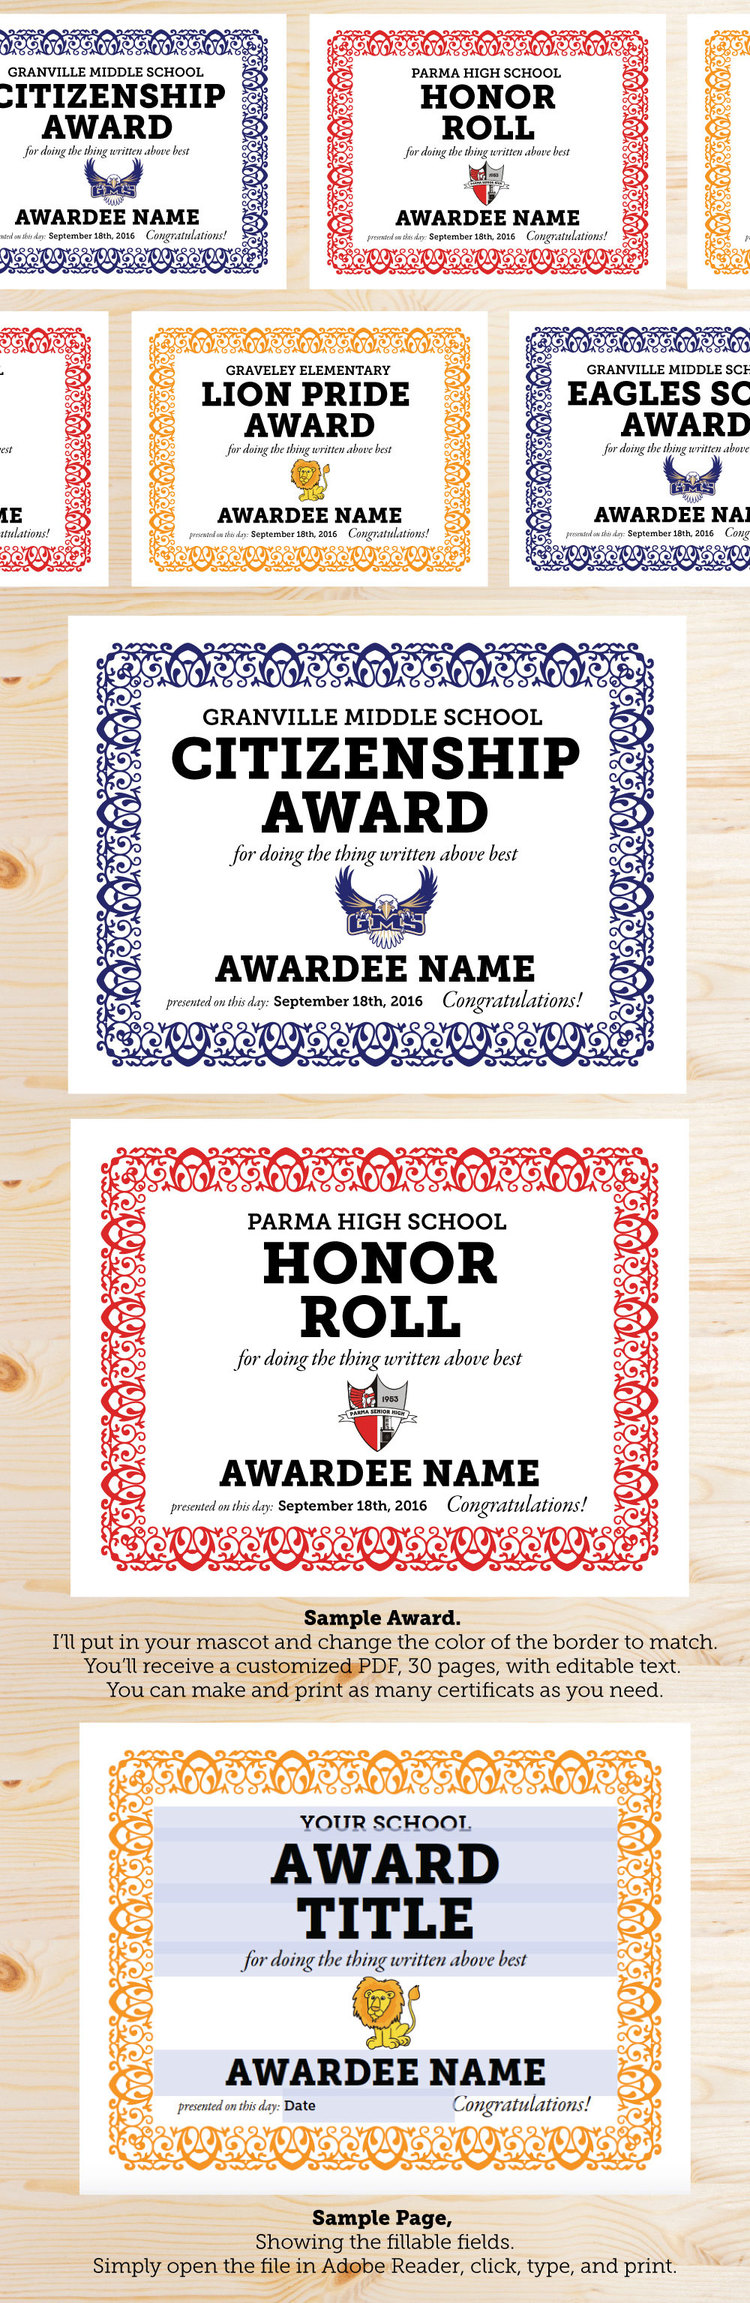 Really Nice School Award Certificates Editable And Customized